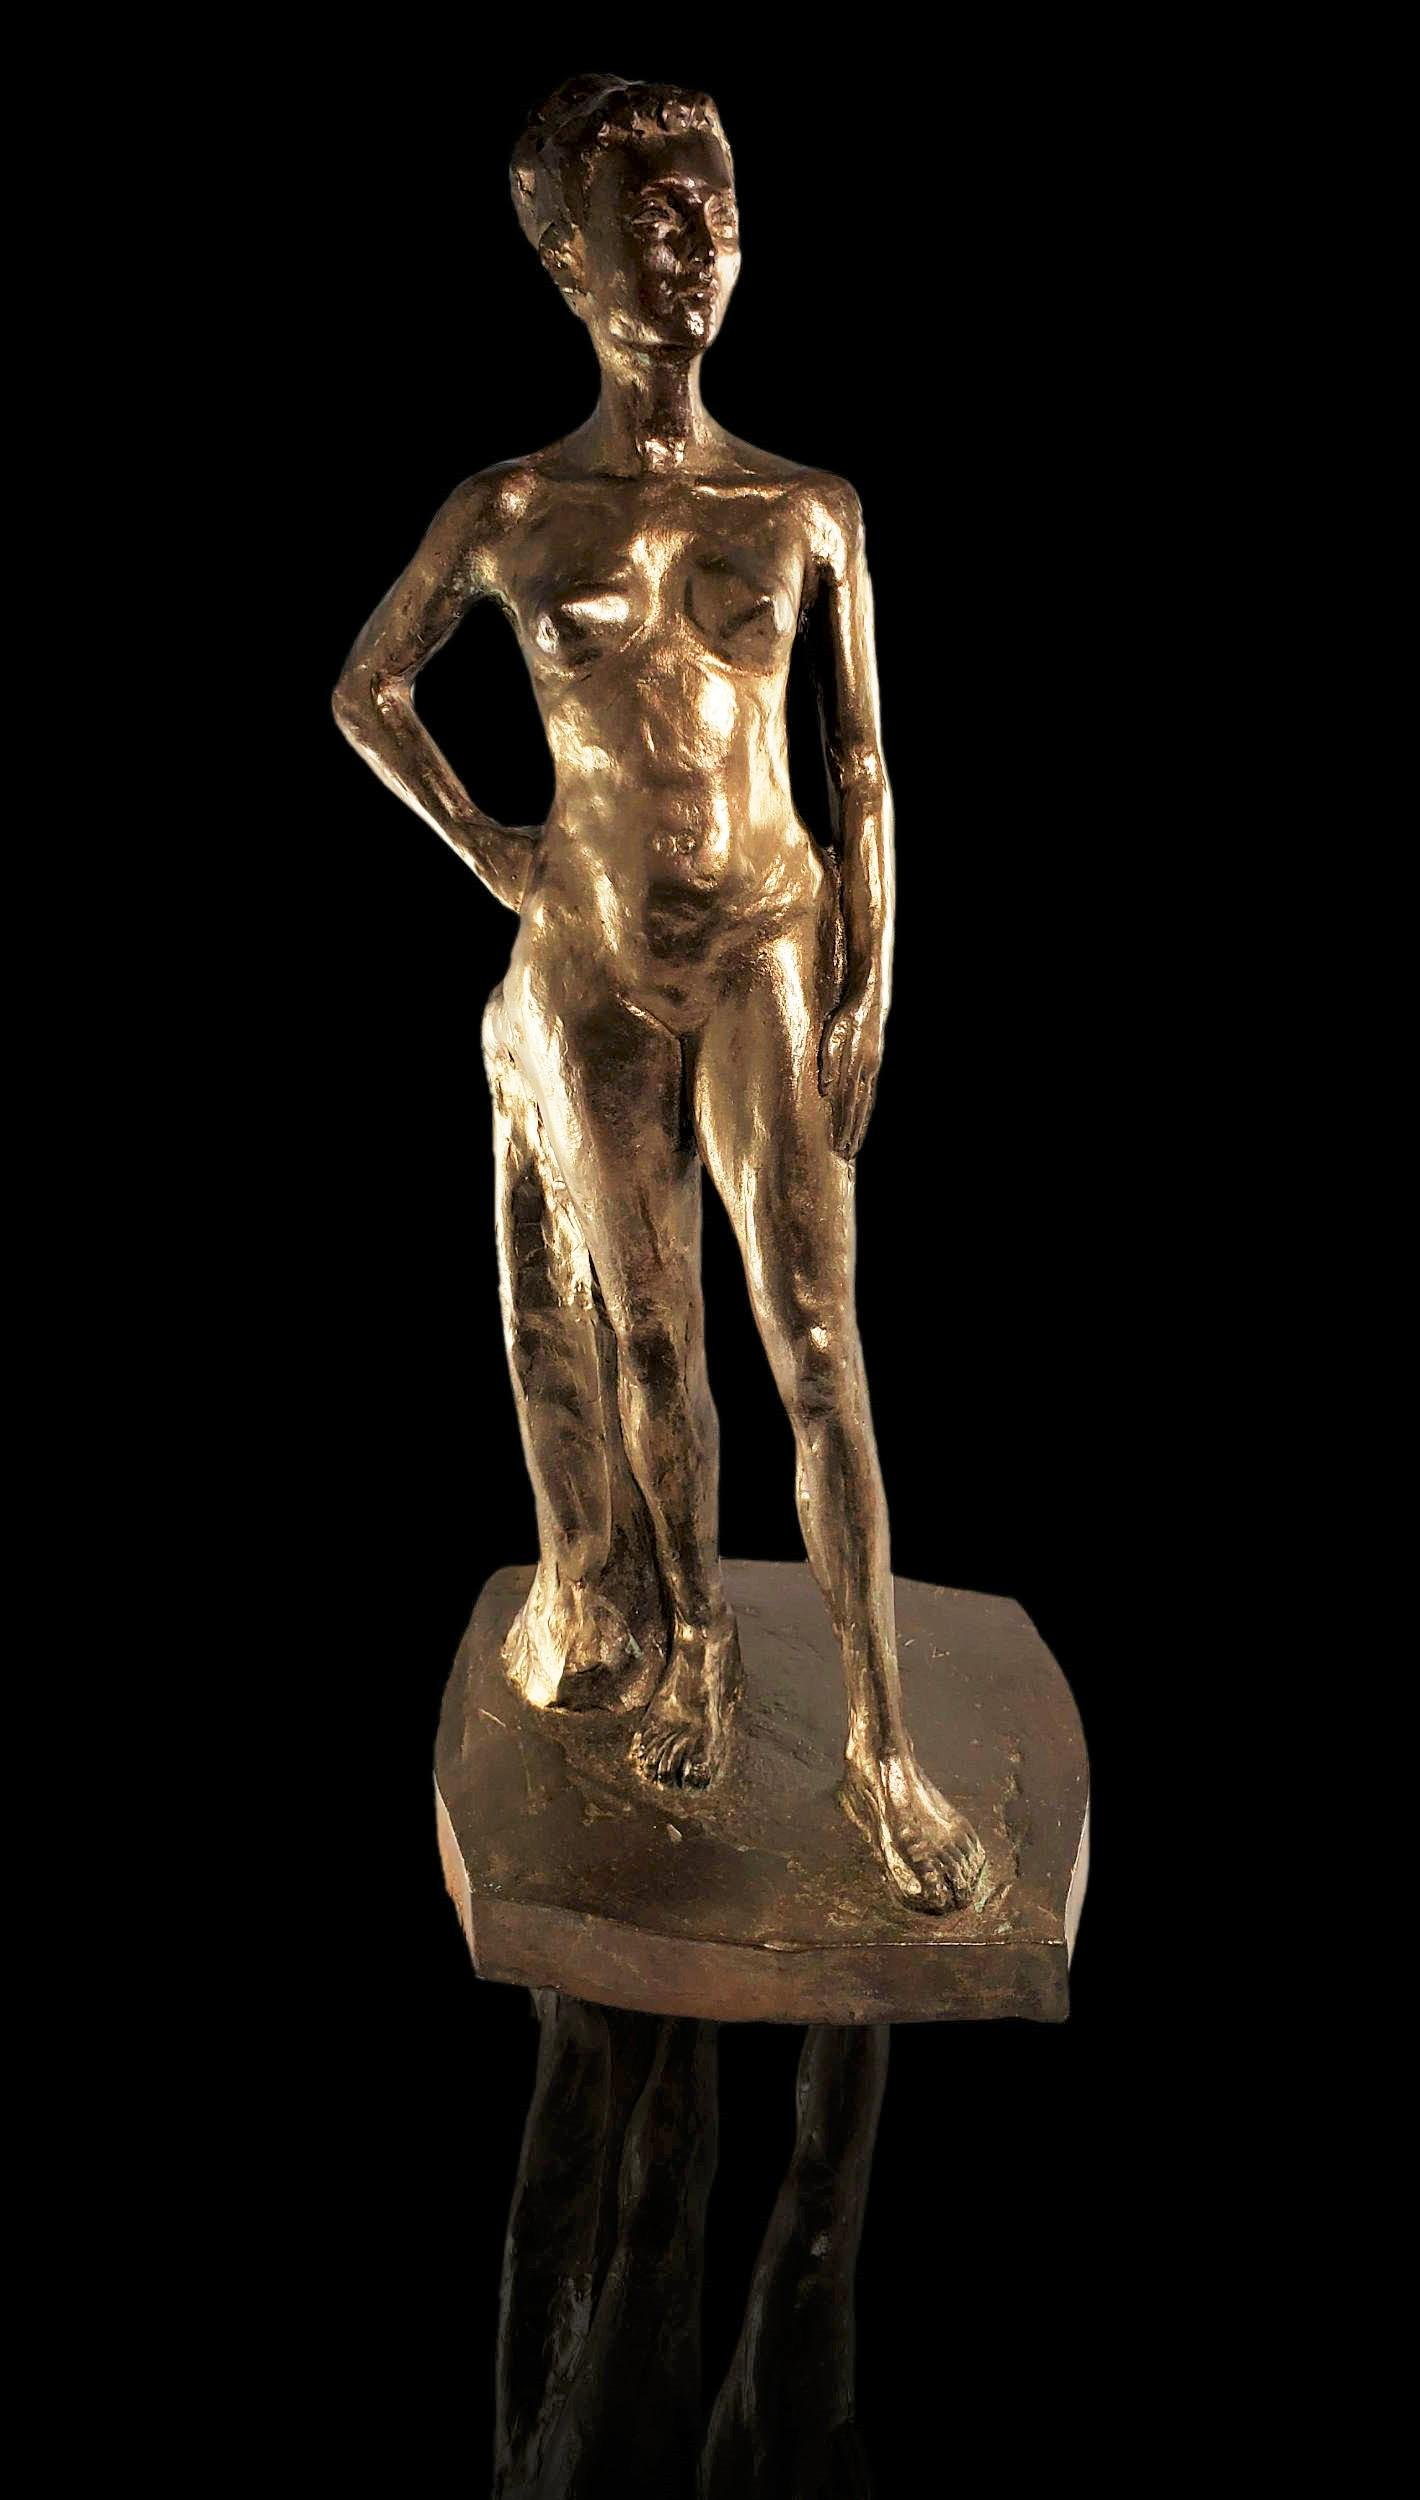 Albert Terry 1965 Nude Bronze sculpture with foundry**